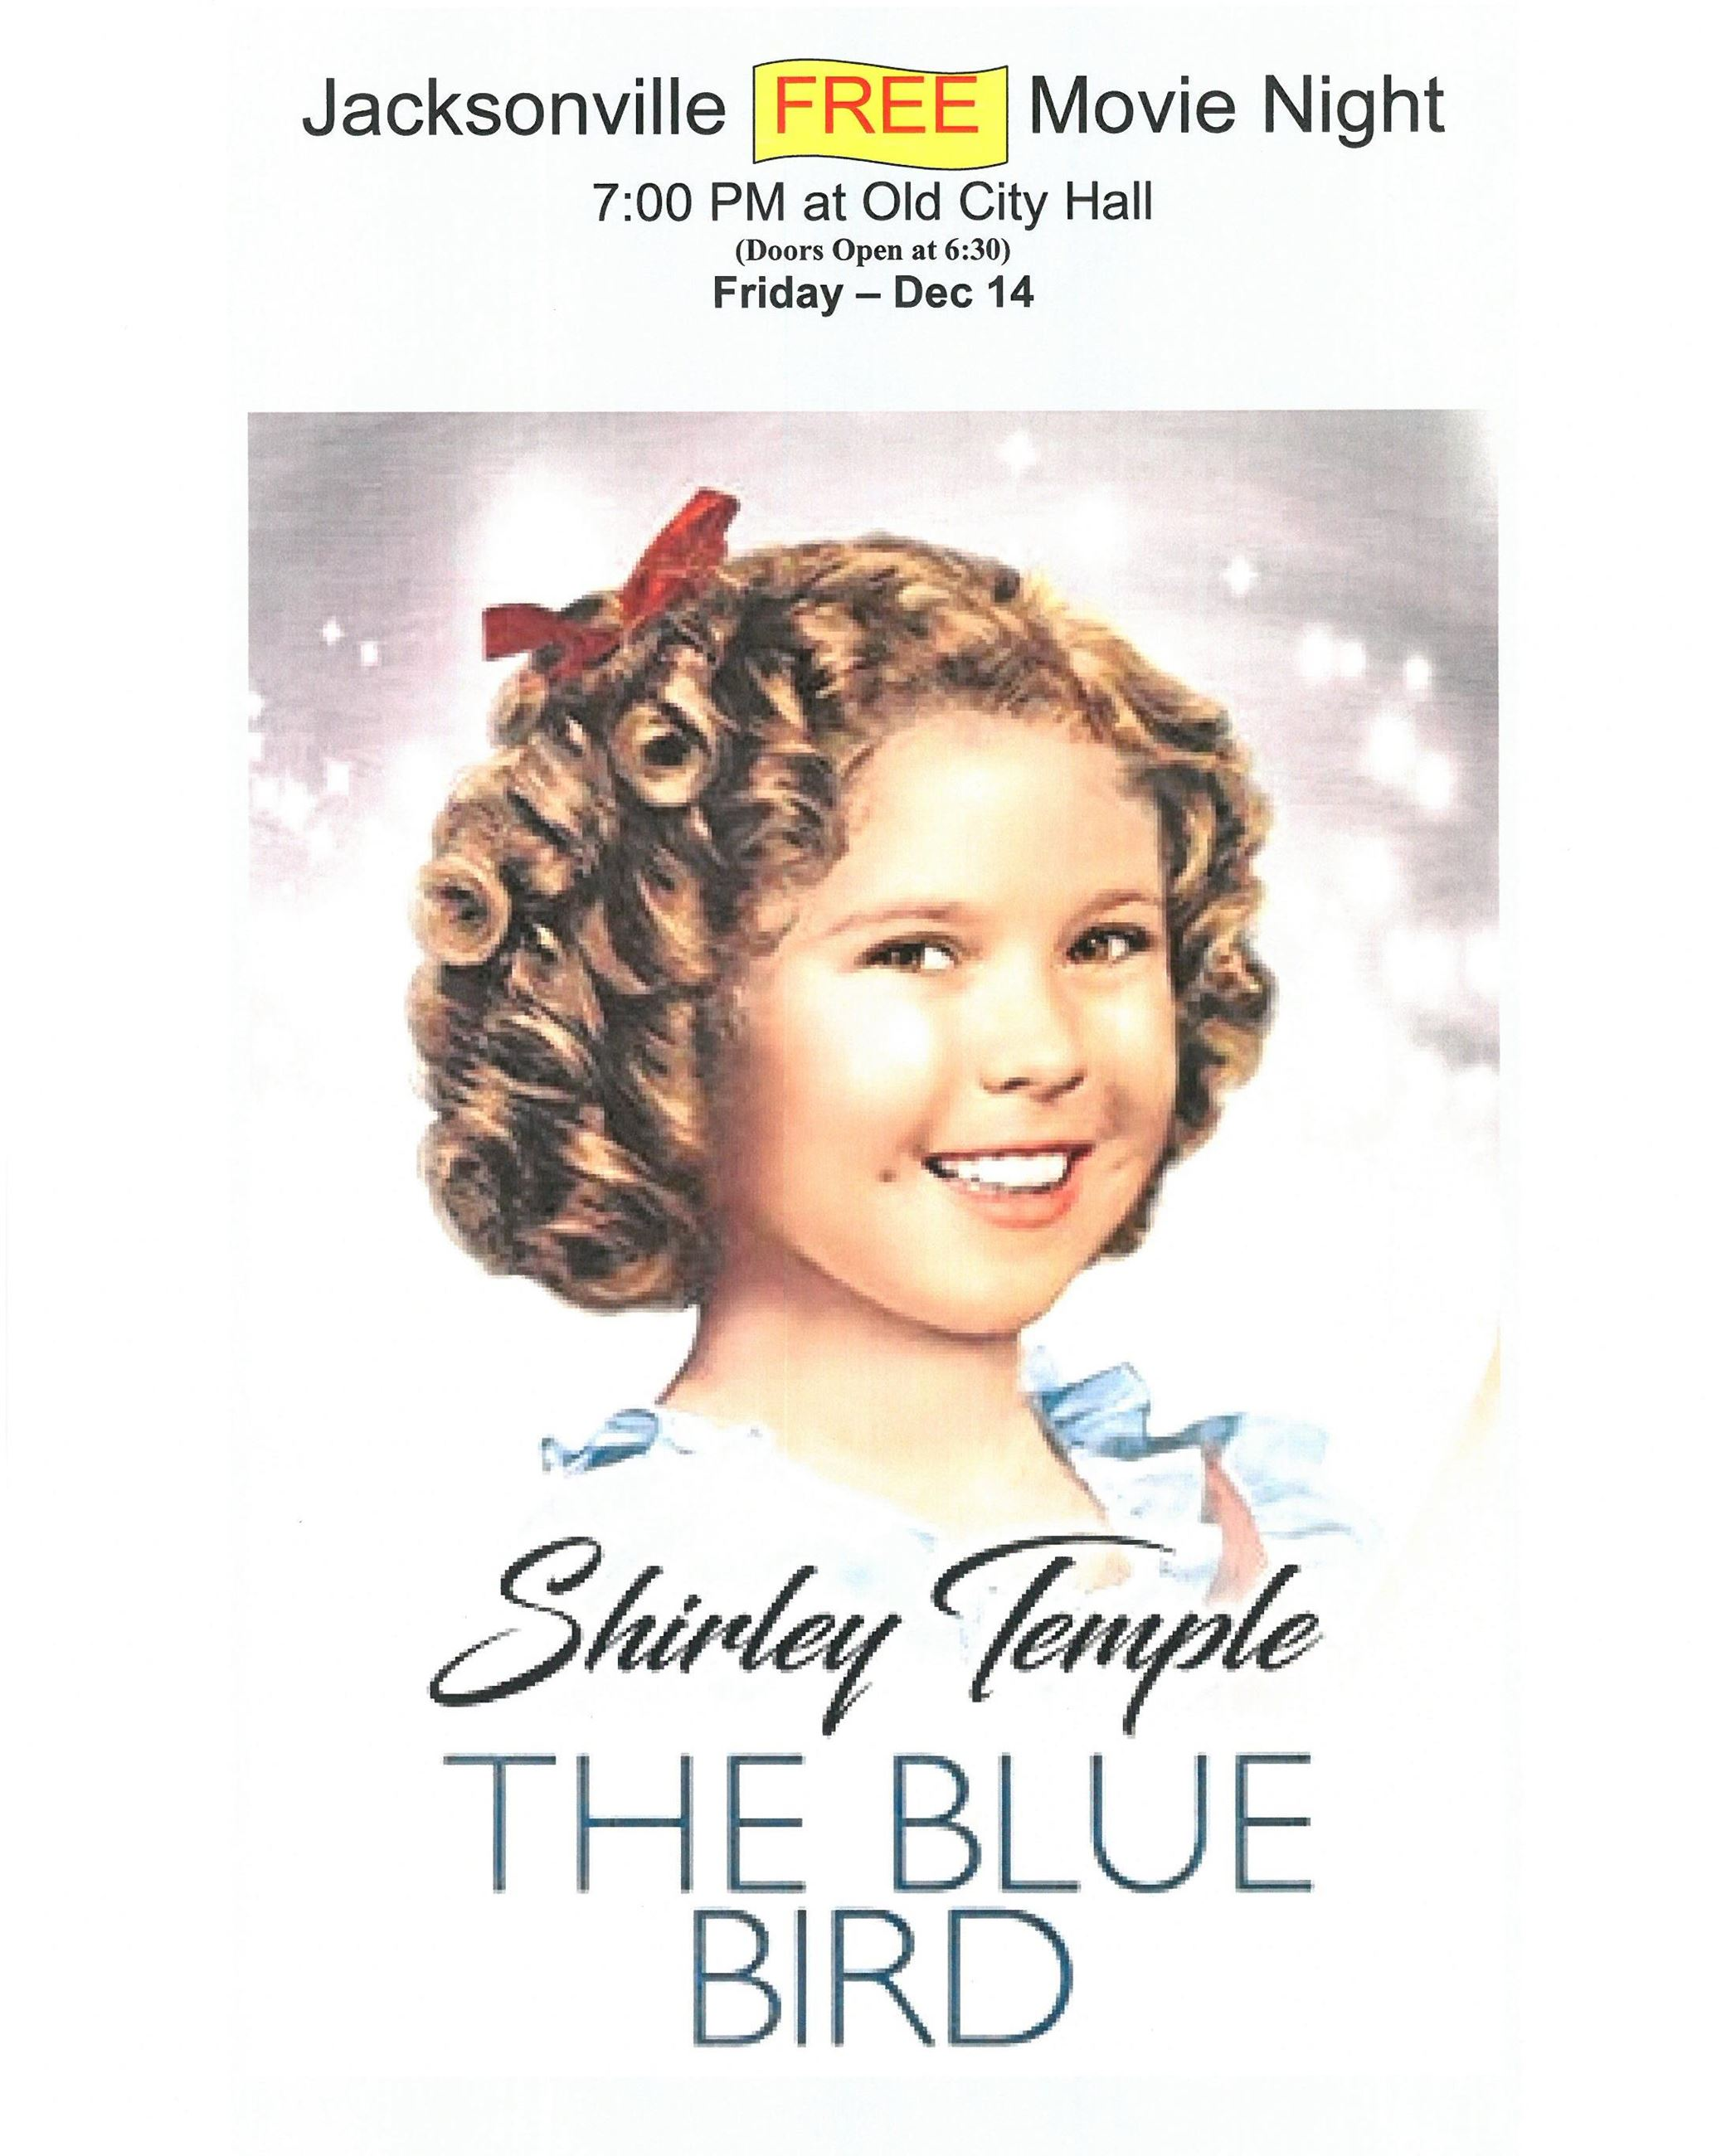 2018-12-14 Shirley Temple, The Blue Bird